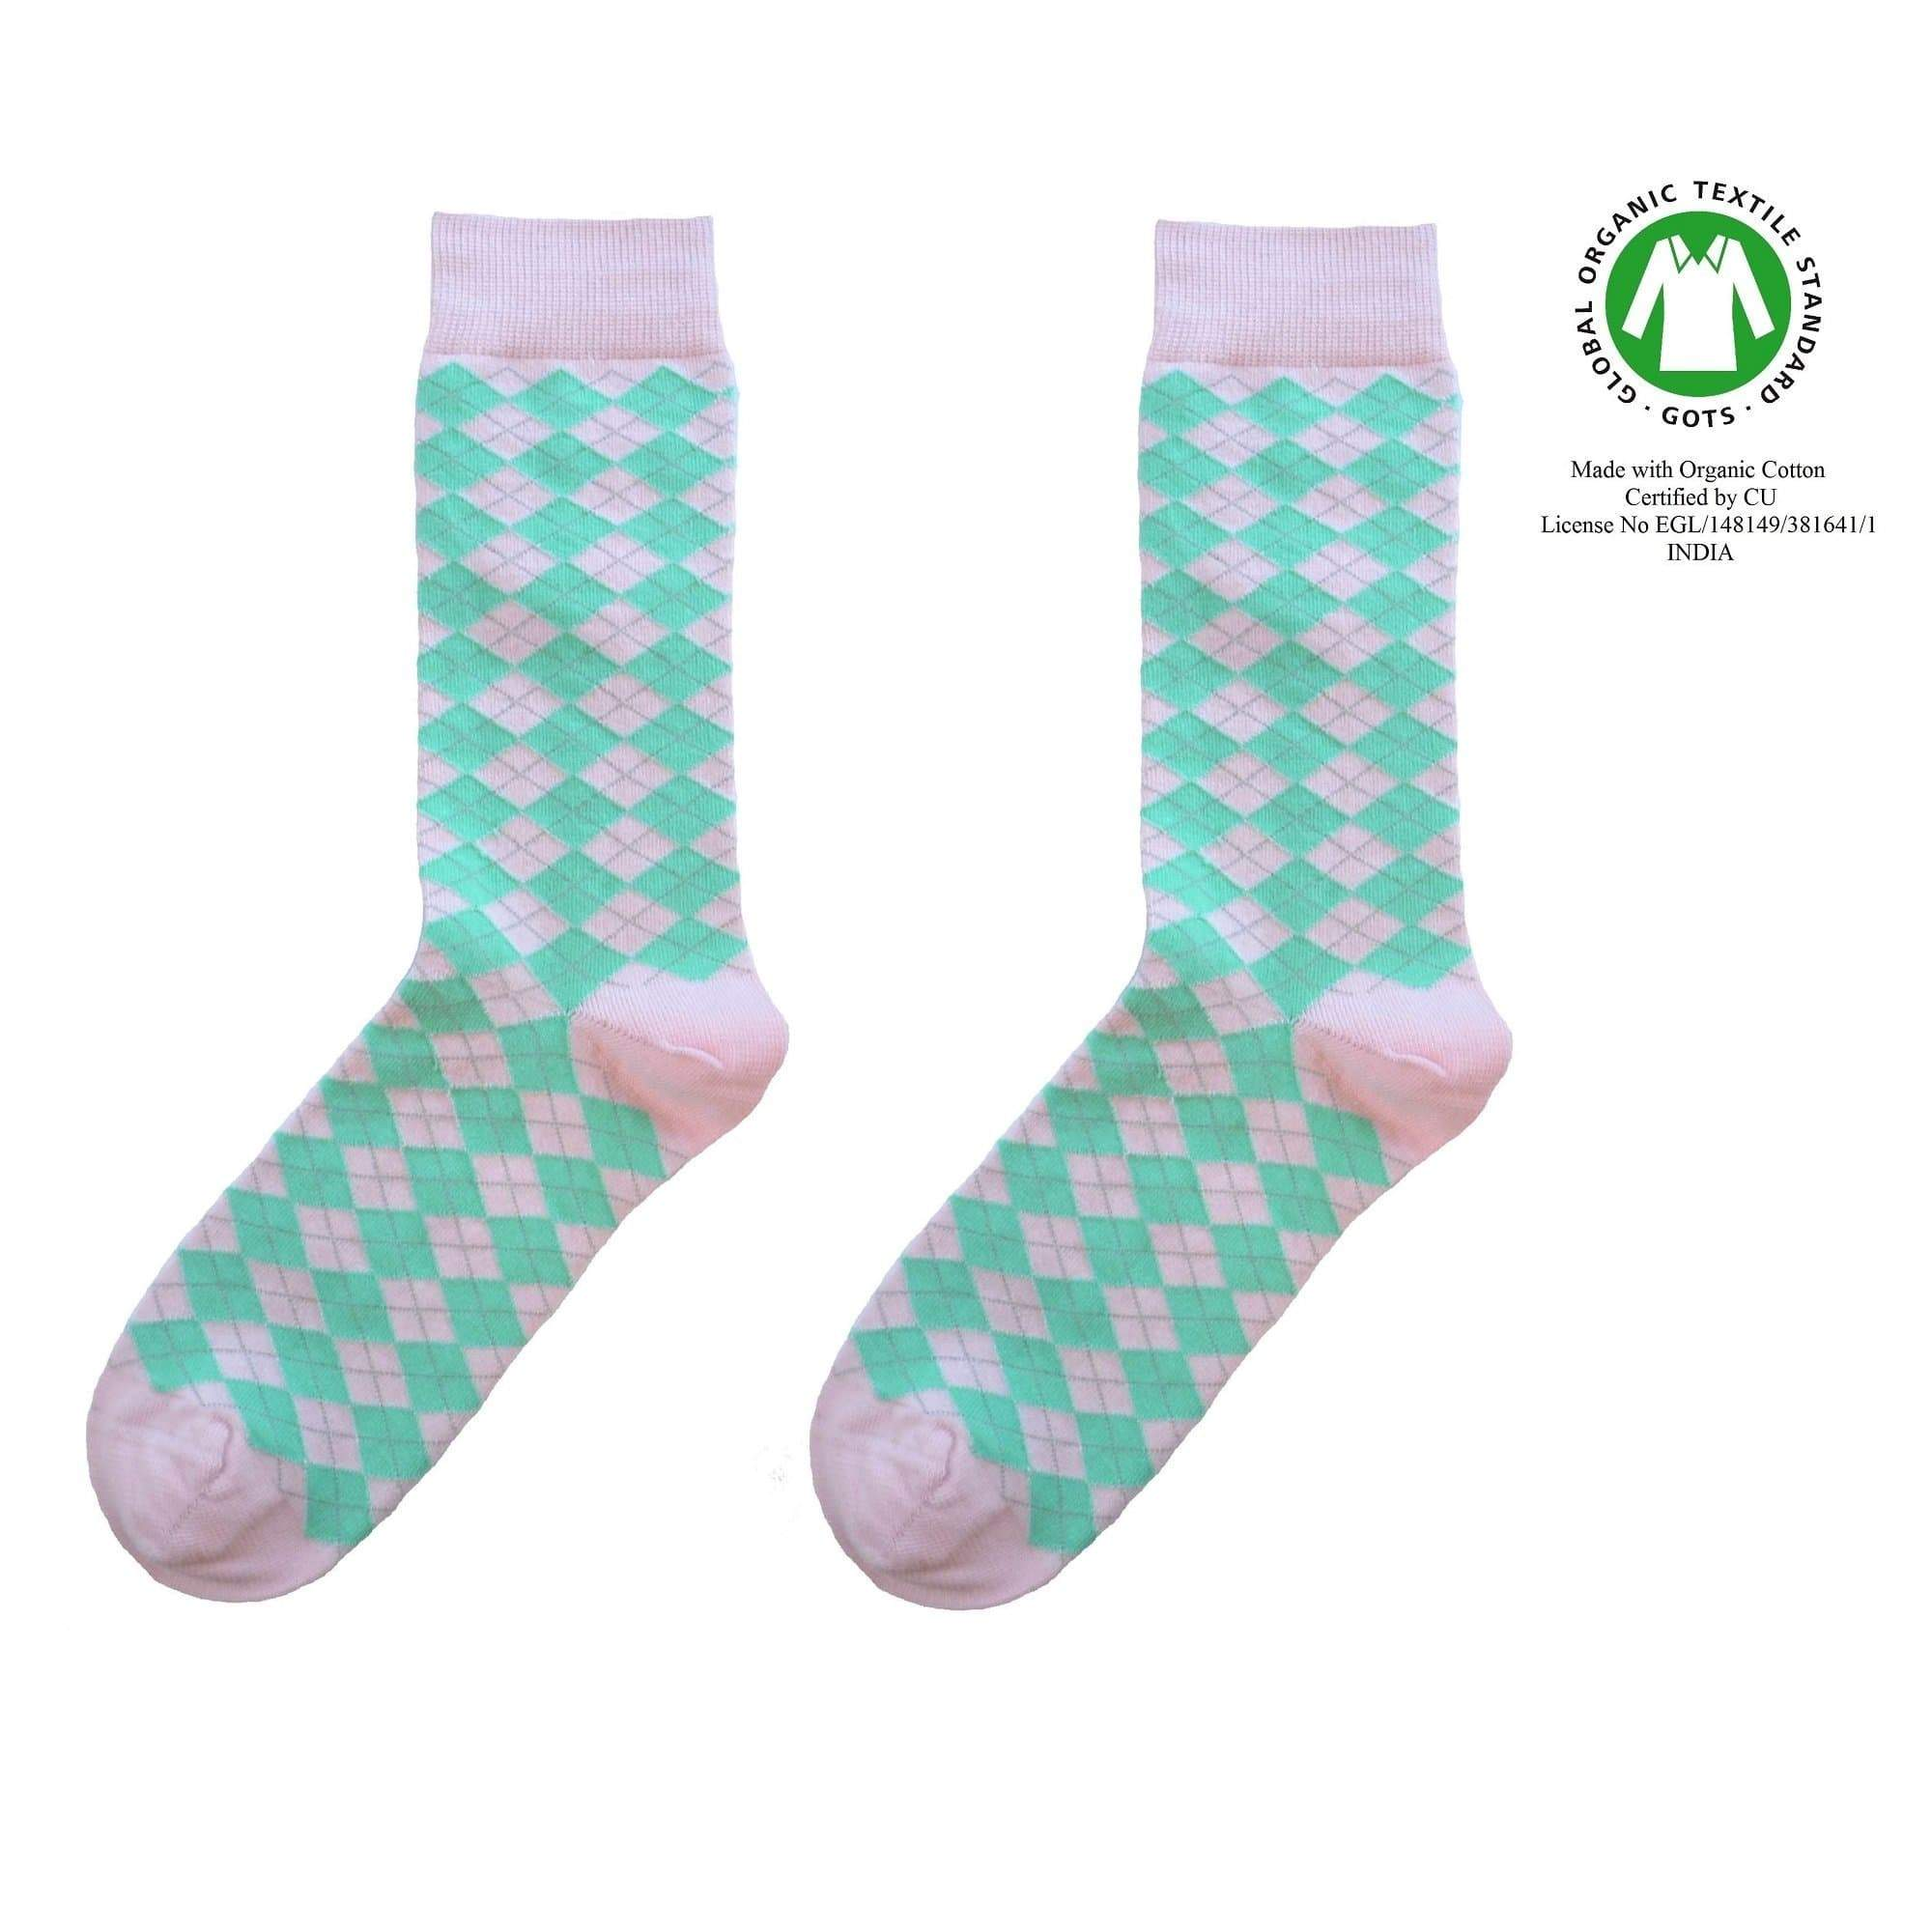 Organic Socks of Sweden sock Lindqvist Socks. Organic Cotton. sustainable fashion ethical fashion